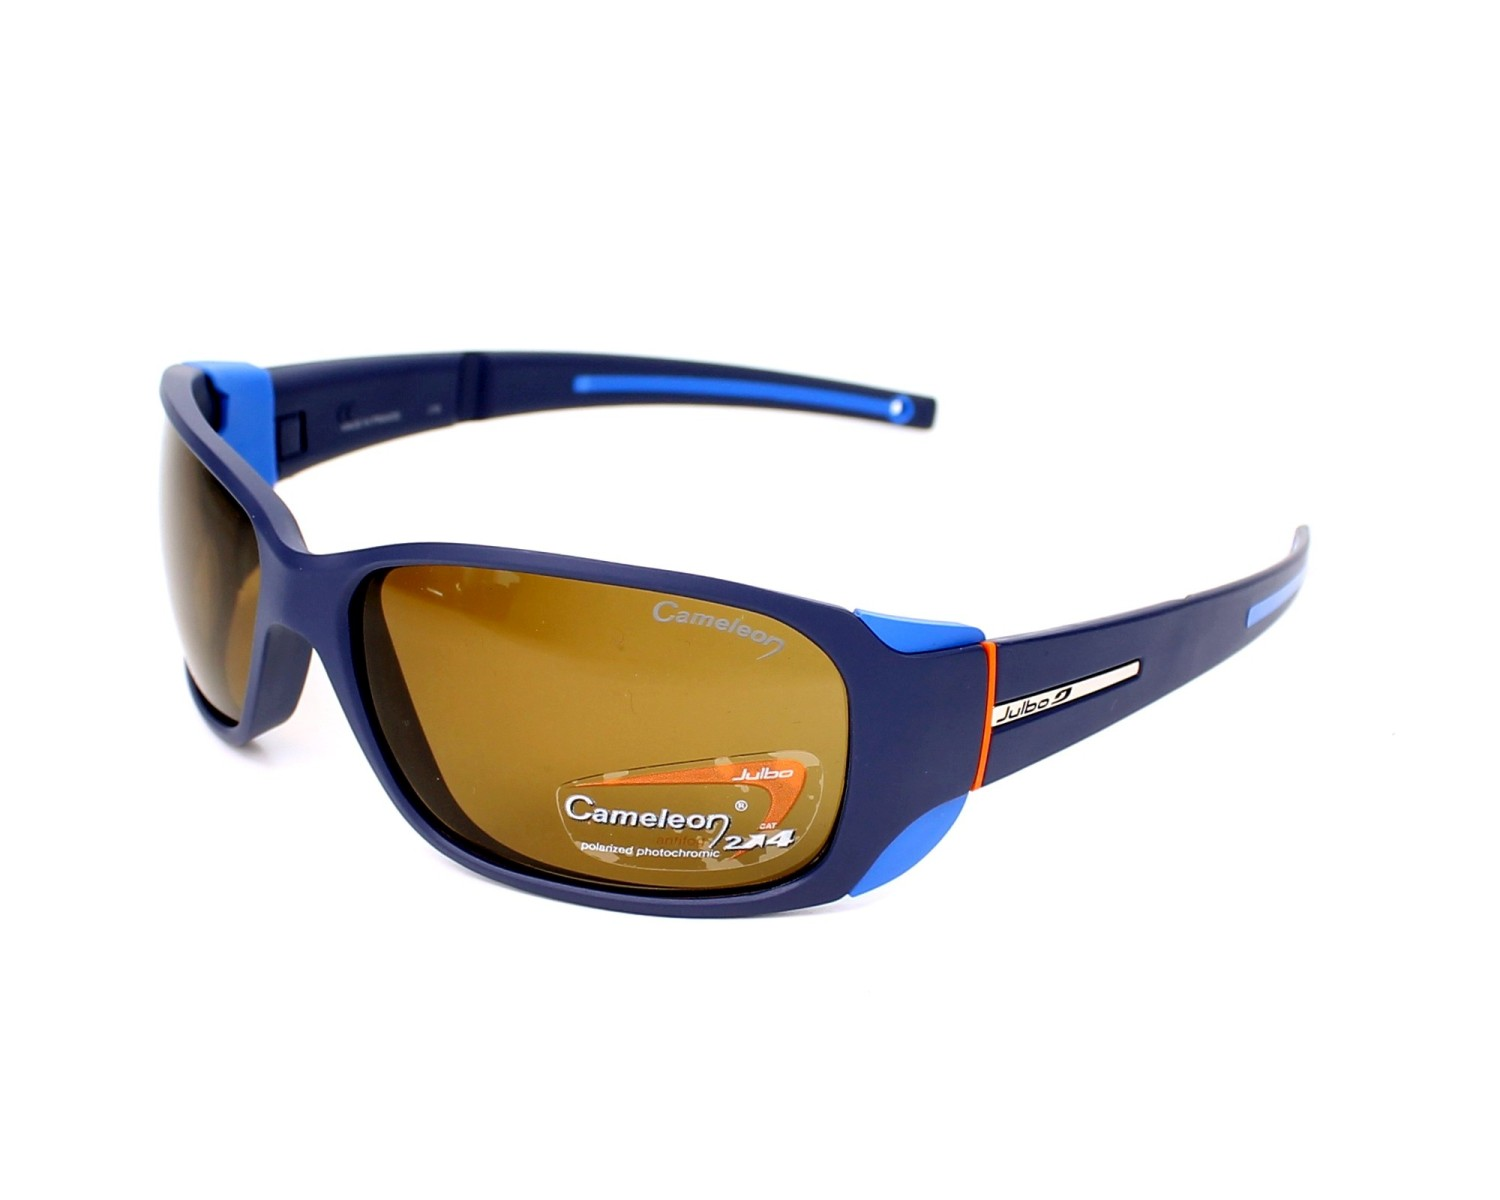 eef2147493 Julbo sunglasses - low prices all year long (336 models)